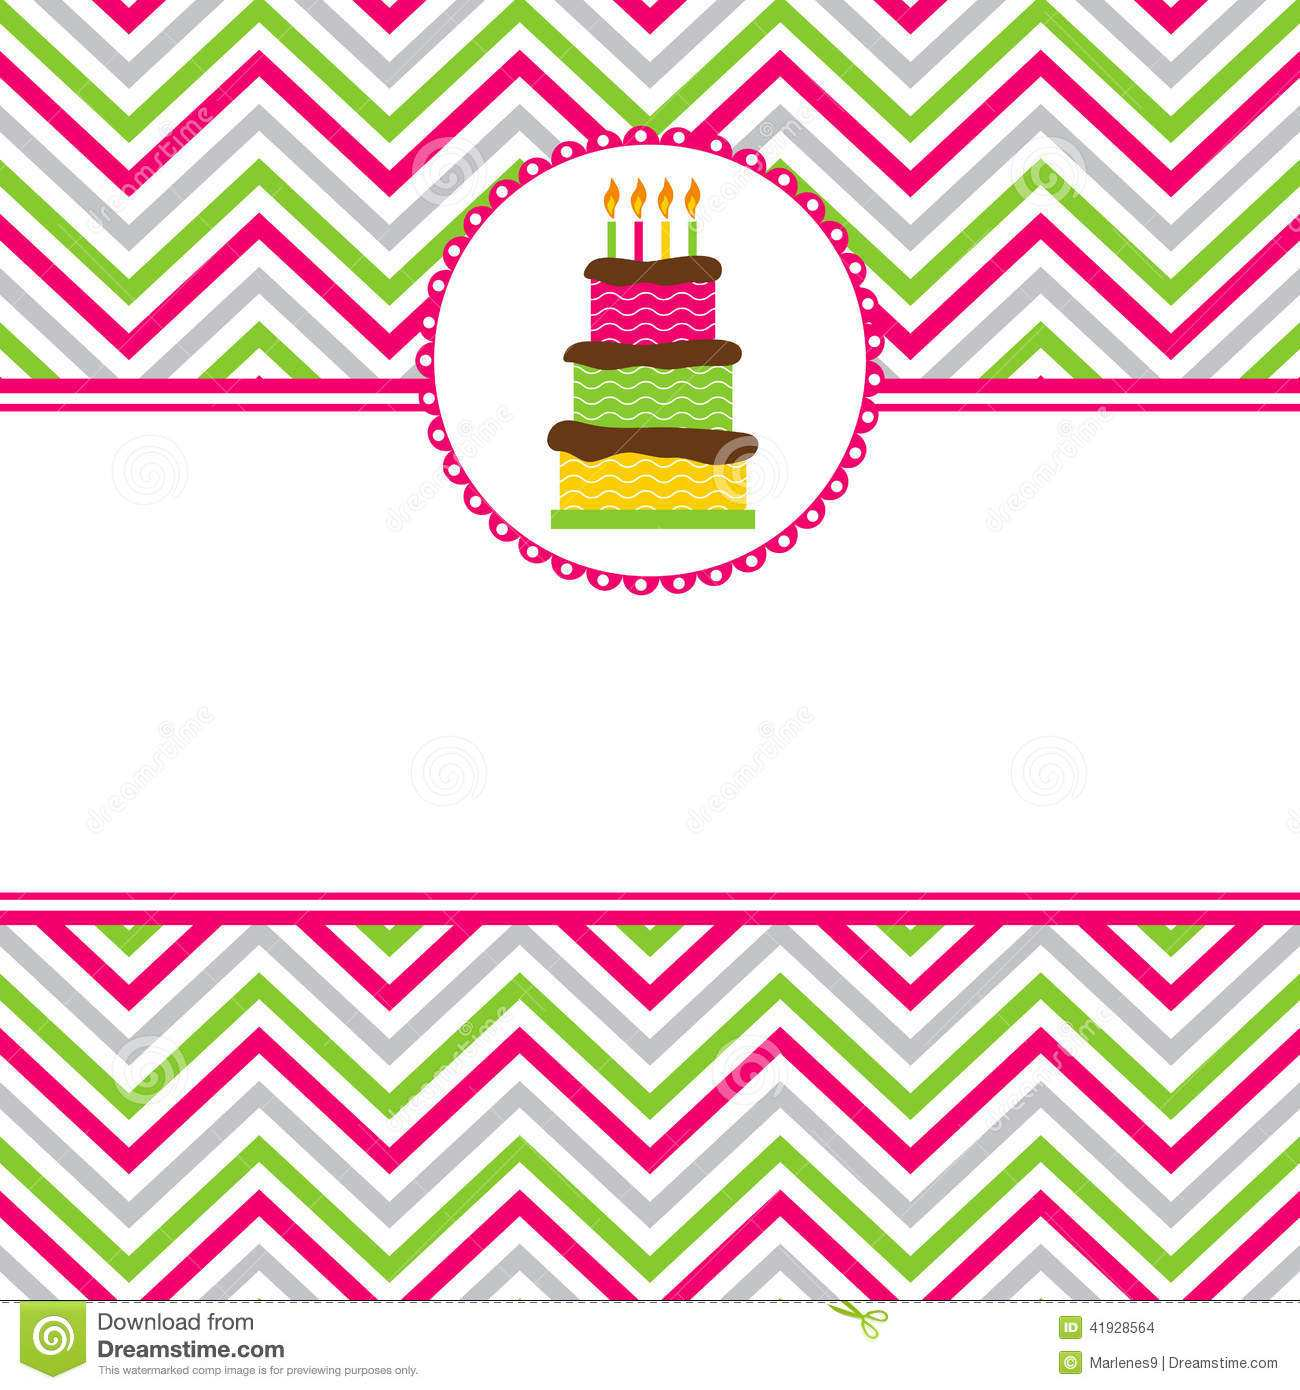 76 How To Create Happy Birthday Card Templates Free For Free by Happy Birthday Card Templates Free